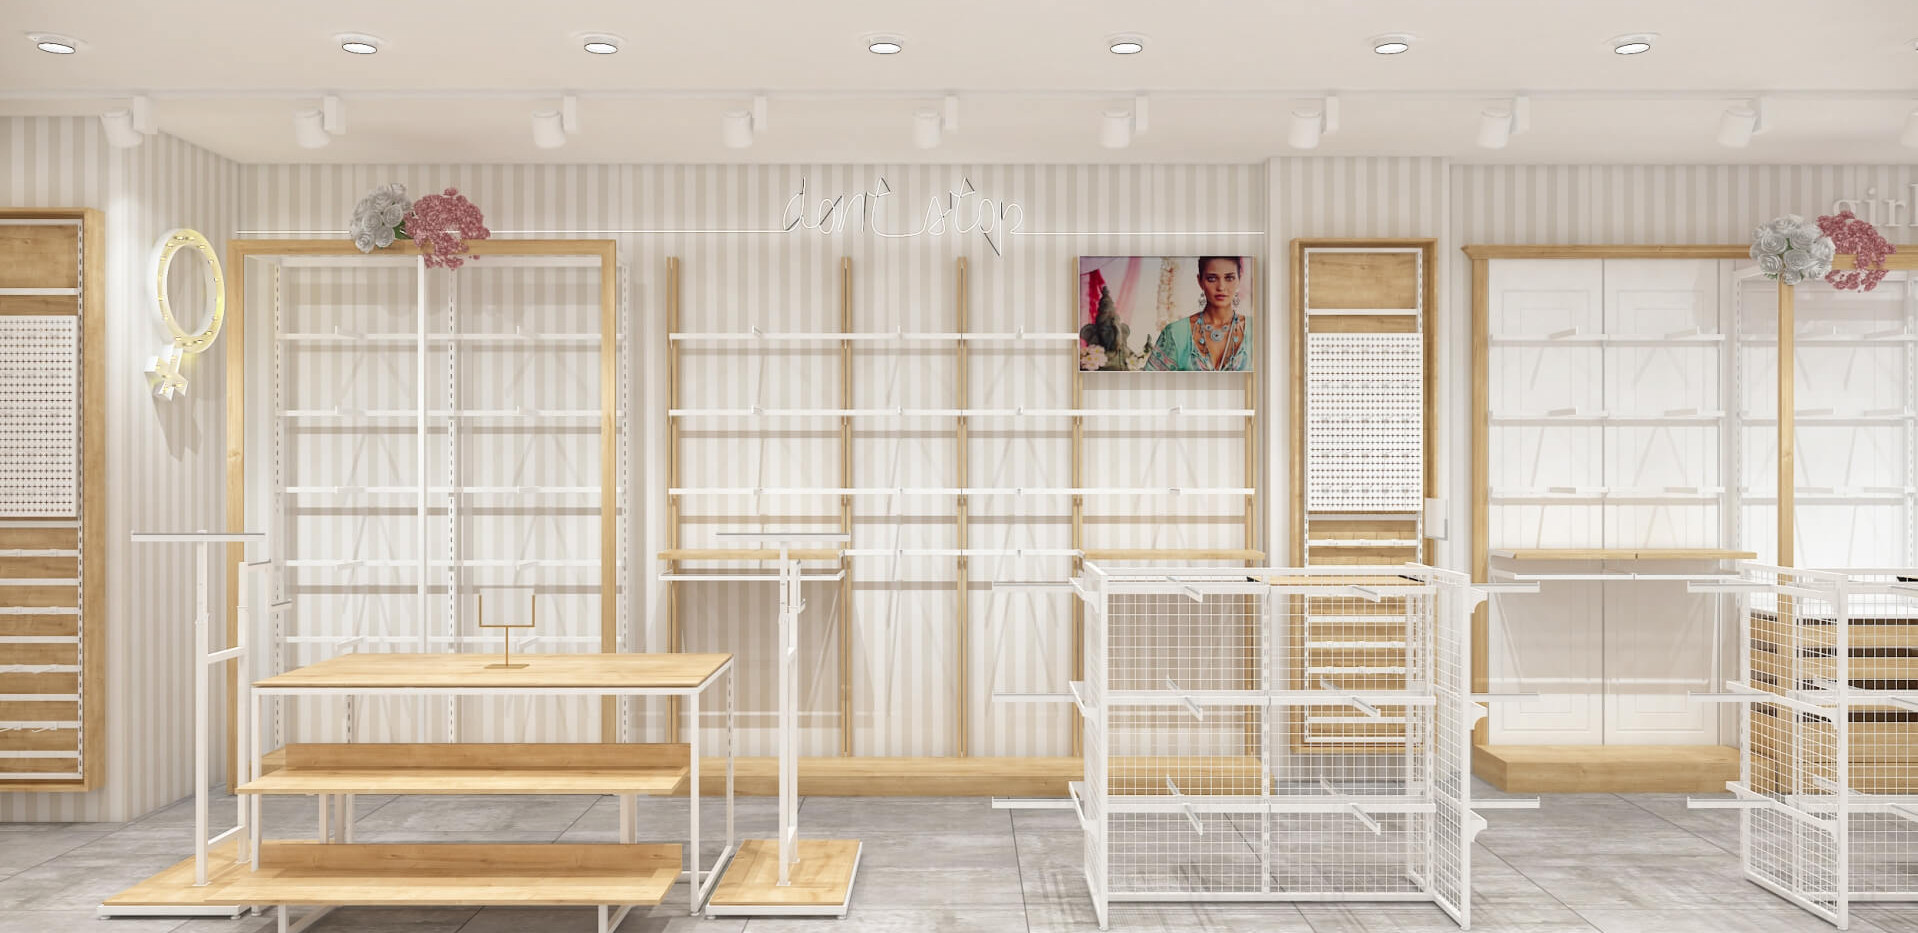 Rosabella - Fashion Store Shop Design-4.